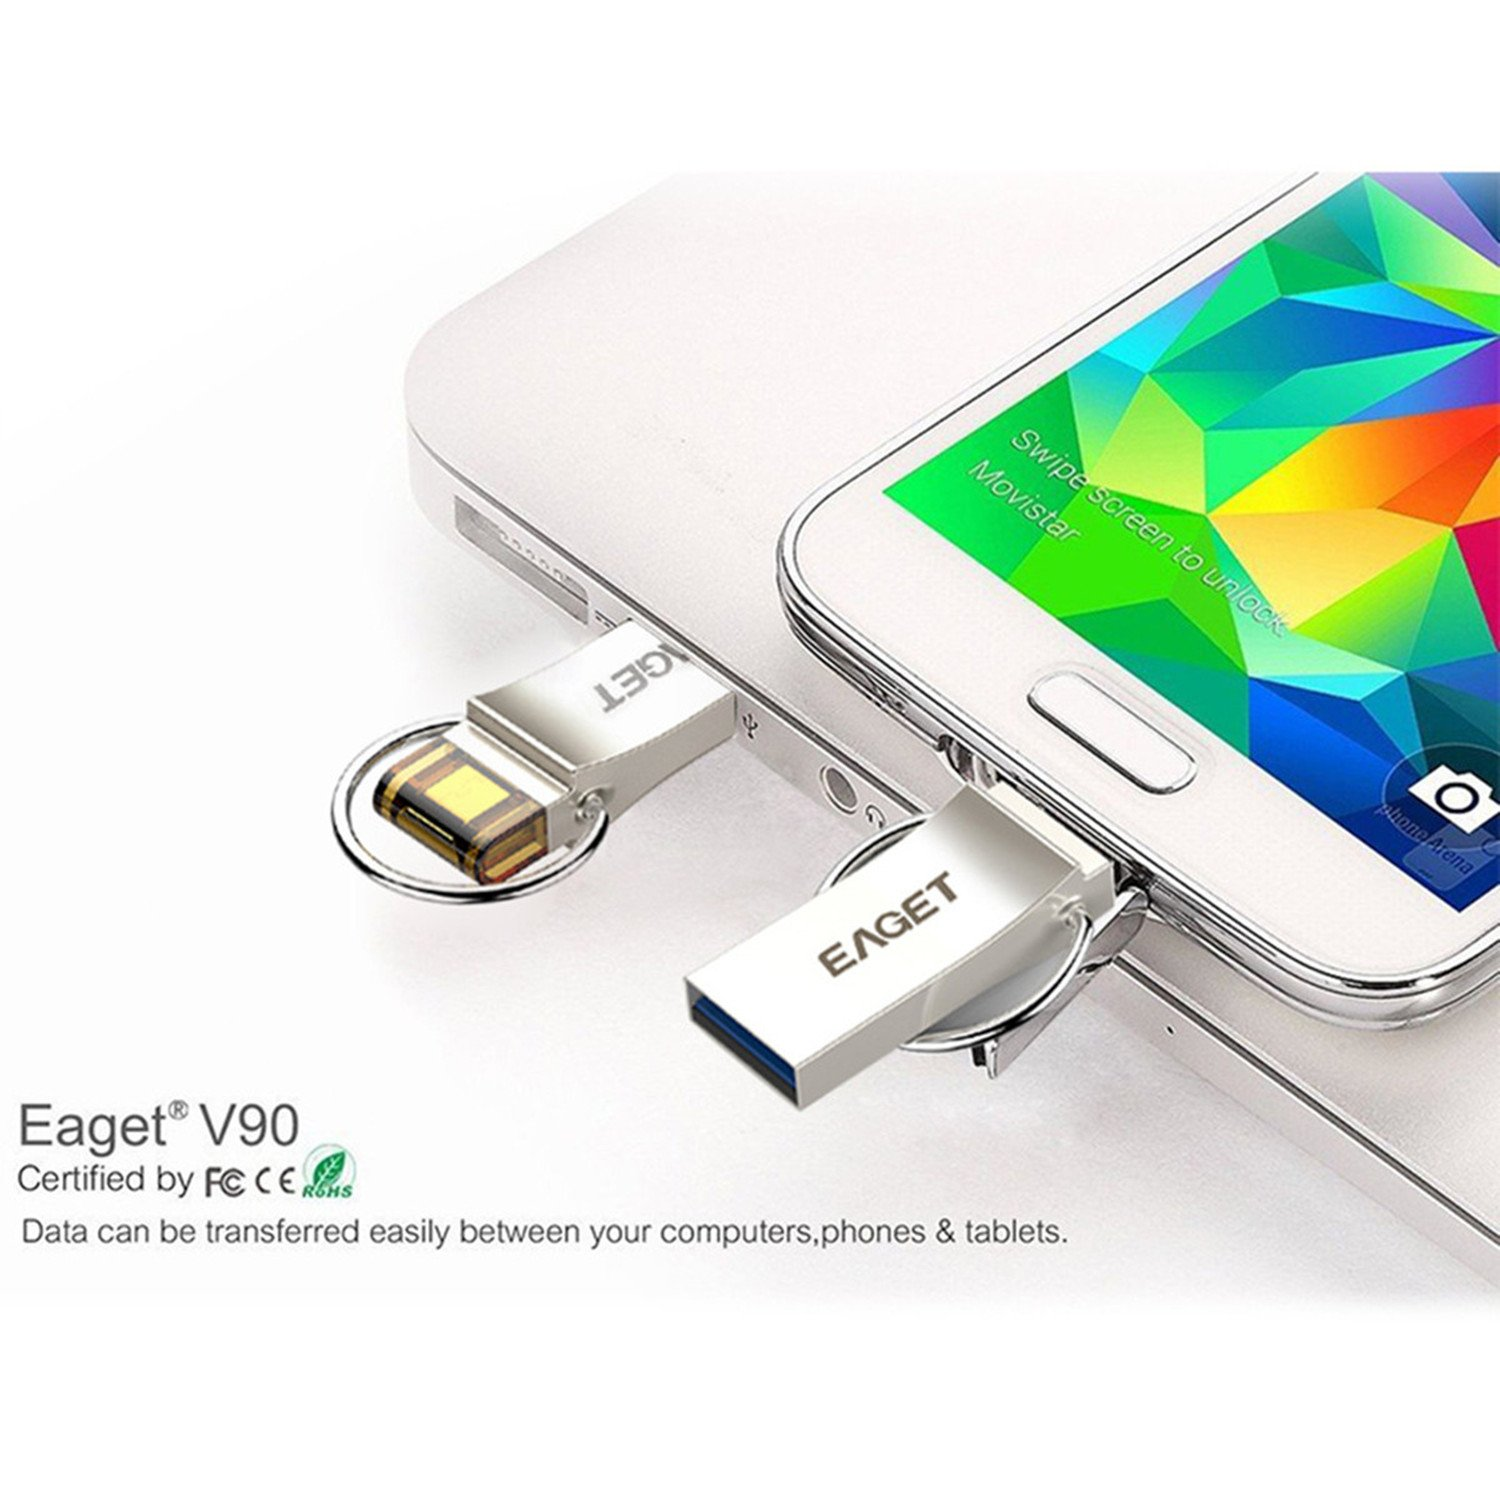 Amazon.com: EAGET V90 2 nd Gen 16 GB USB 3.0 Micro USB OTG ...